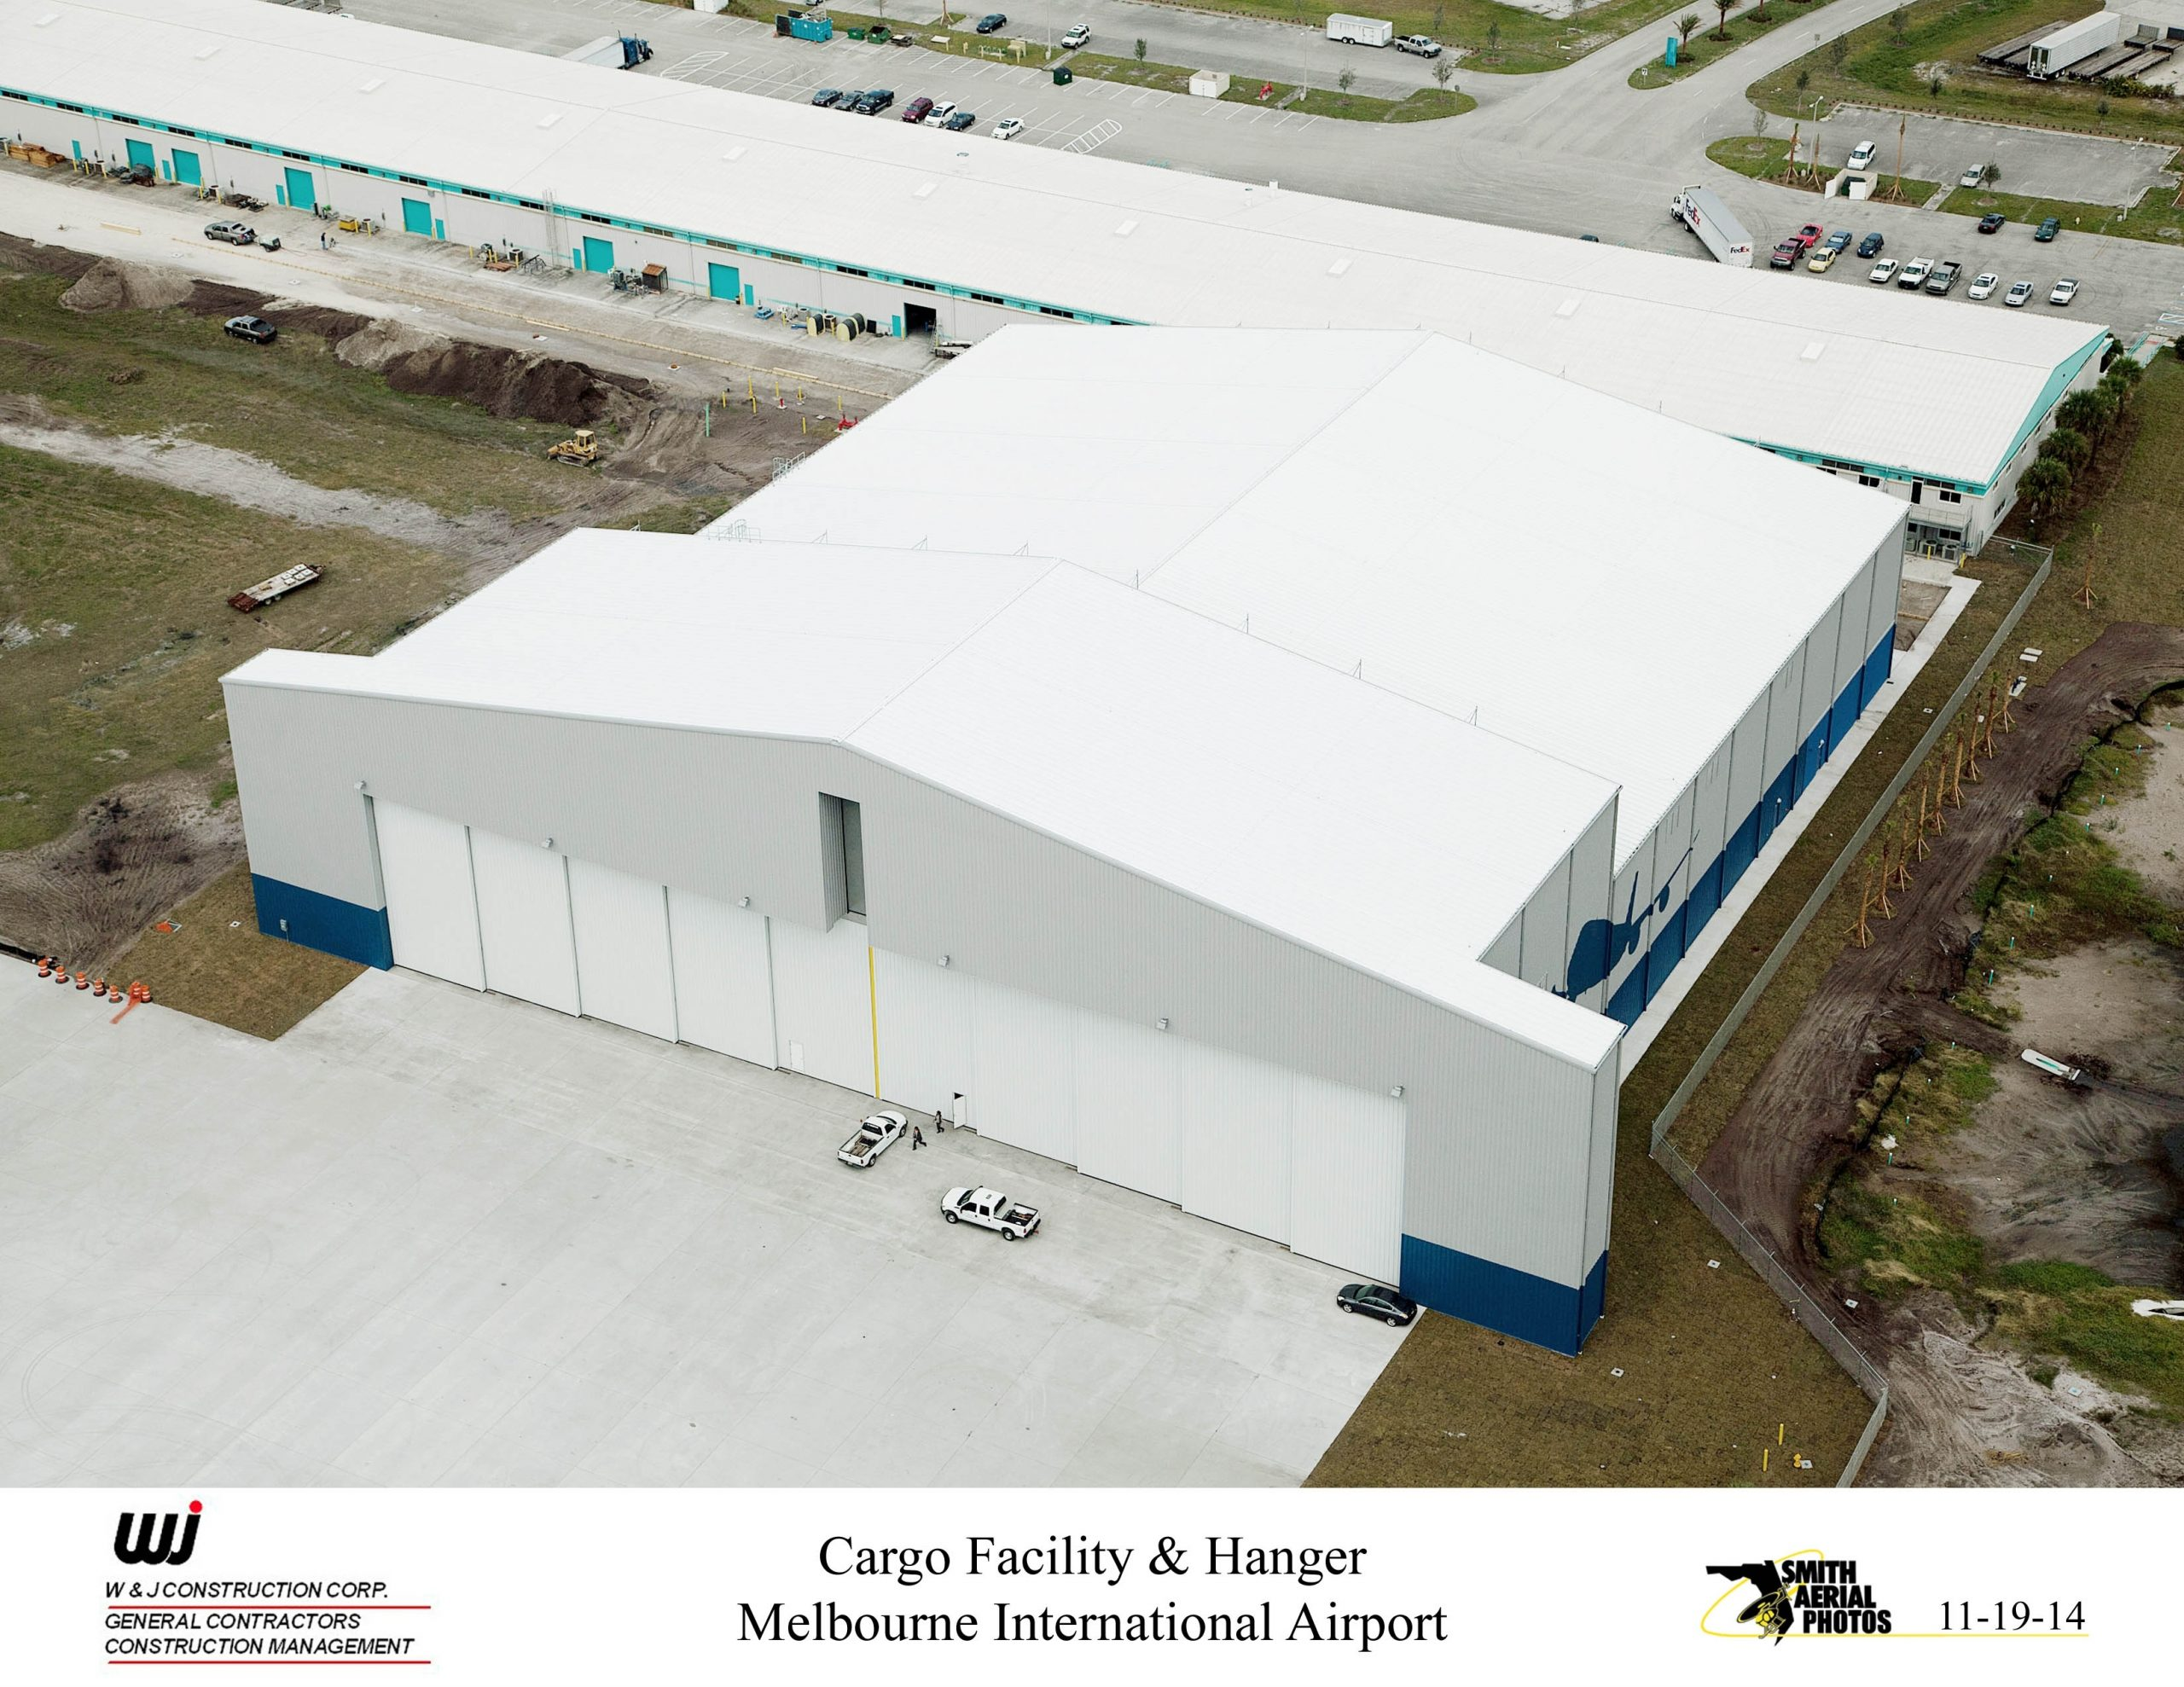 Melbourne Airport Cargo Facility & Hangar - W+J Construction pertaining to Trs Facility Melbourne Airport Map